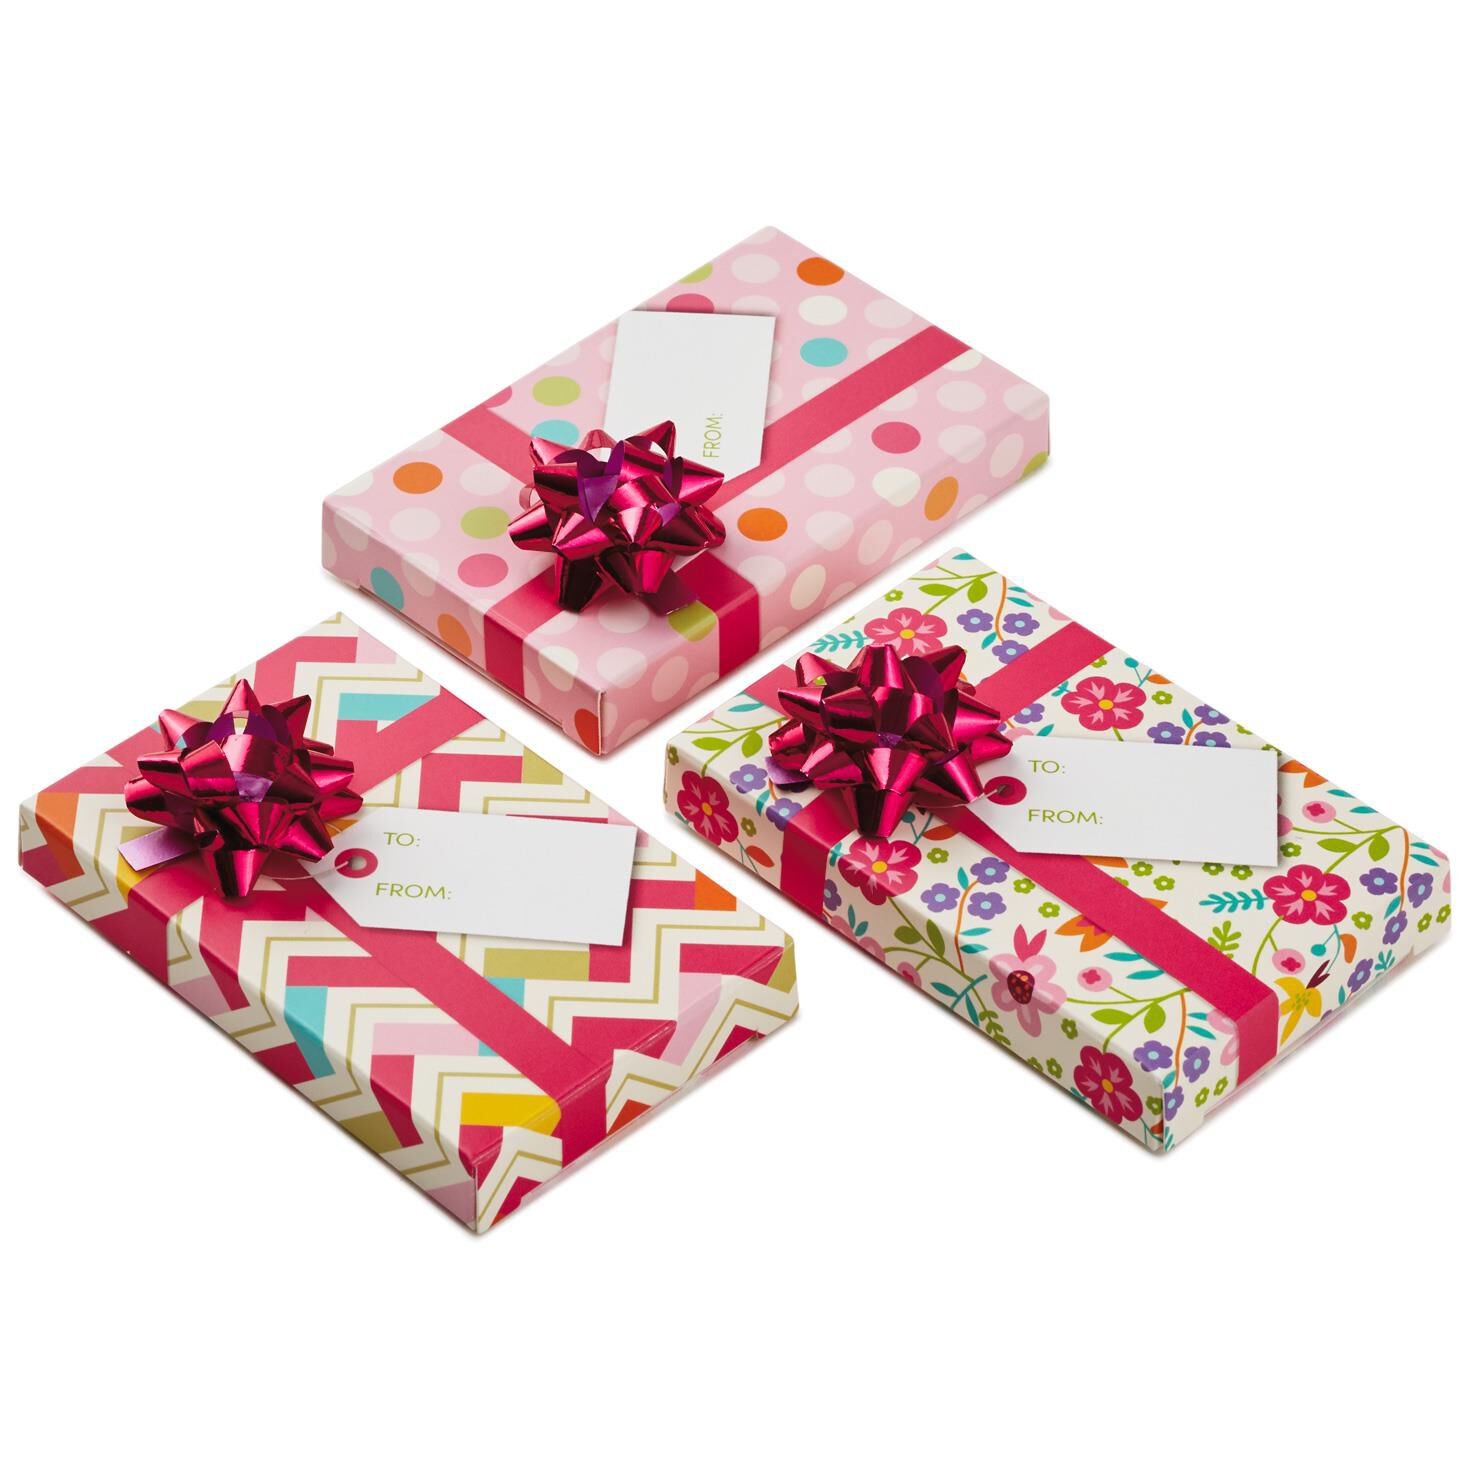 Assorted Pink Gift Card Holder Boxes With Bows, Pack of 3 - Gift ...